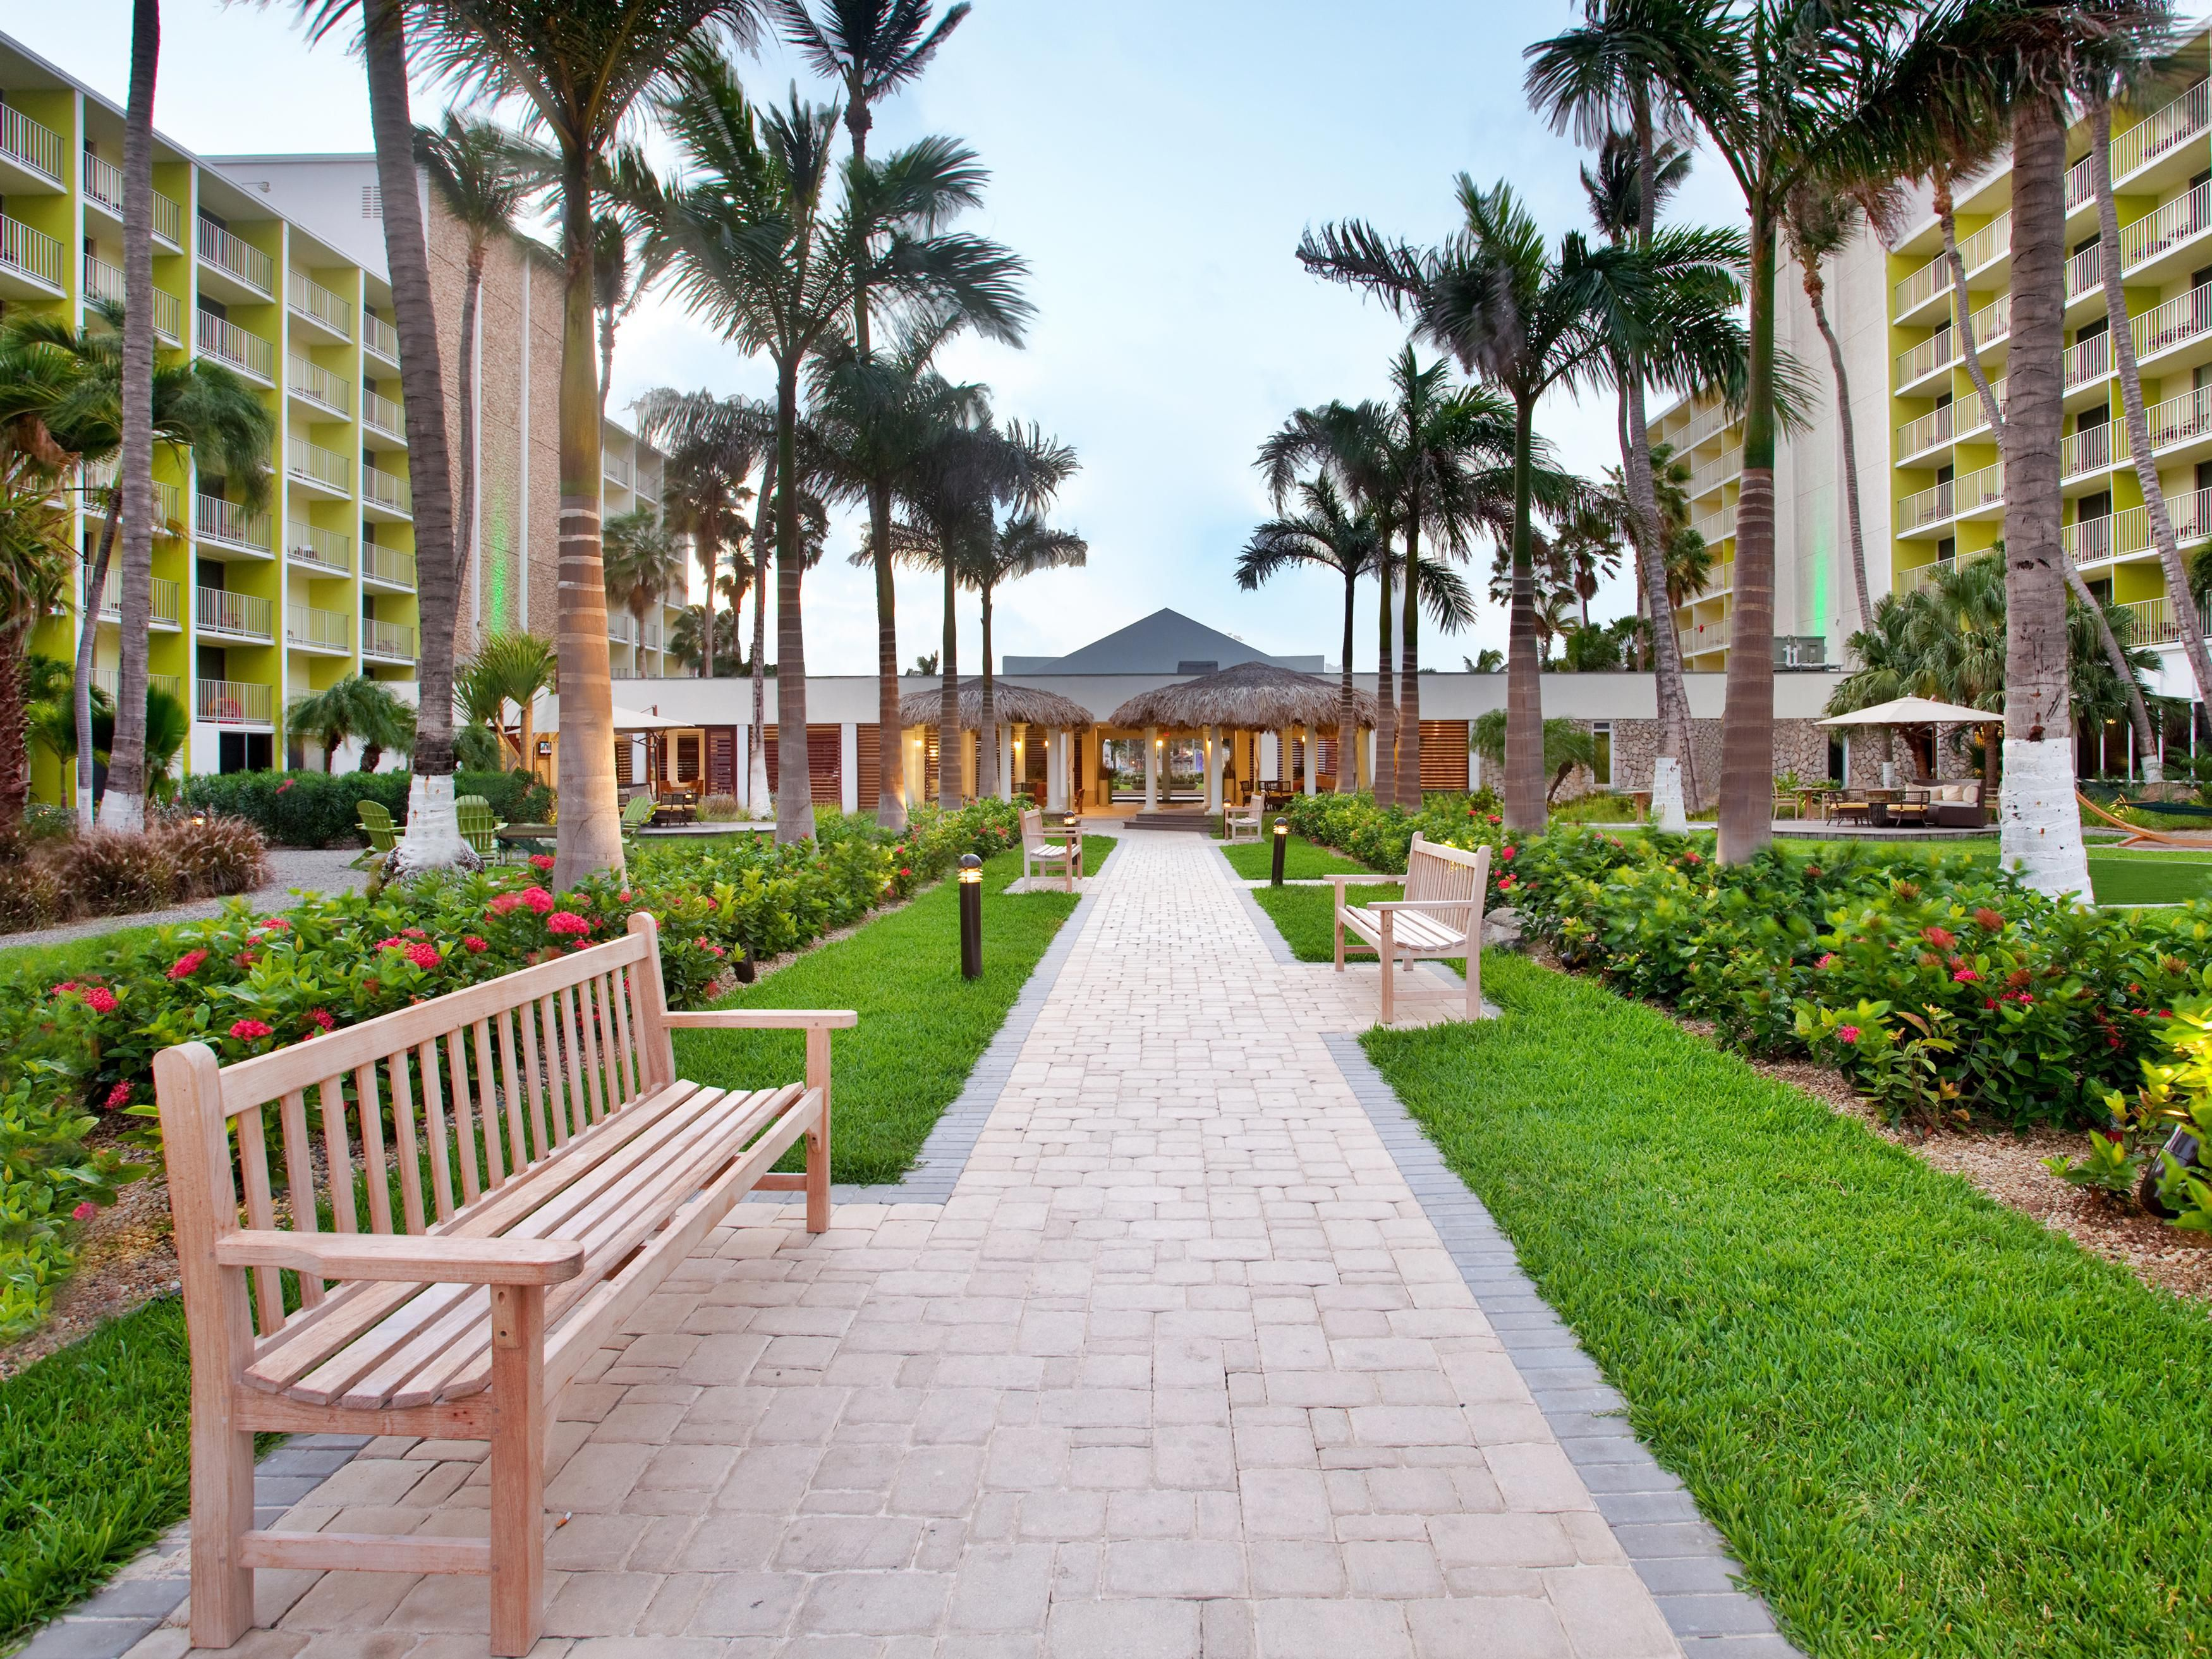 Holiday Inn Resort Aruba Courtyard